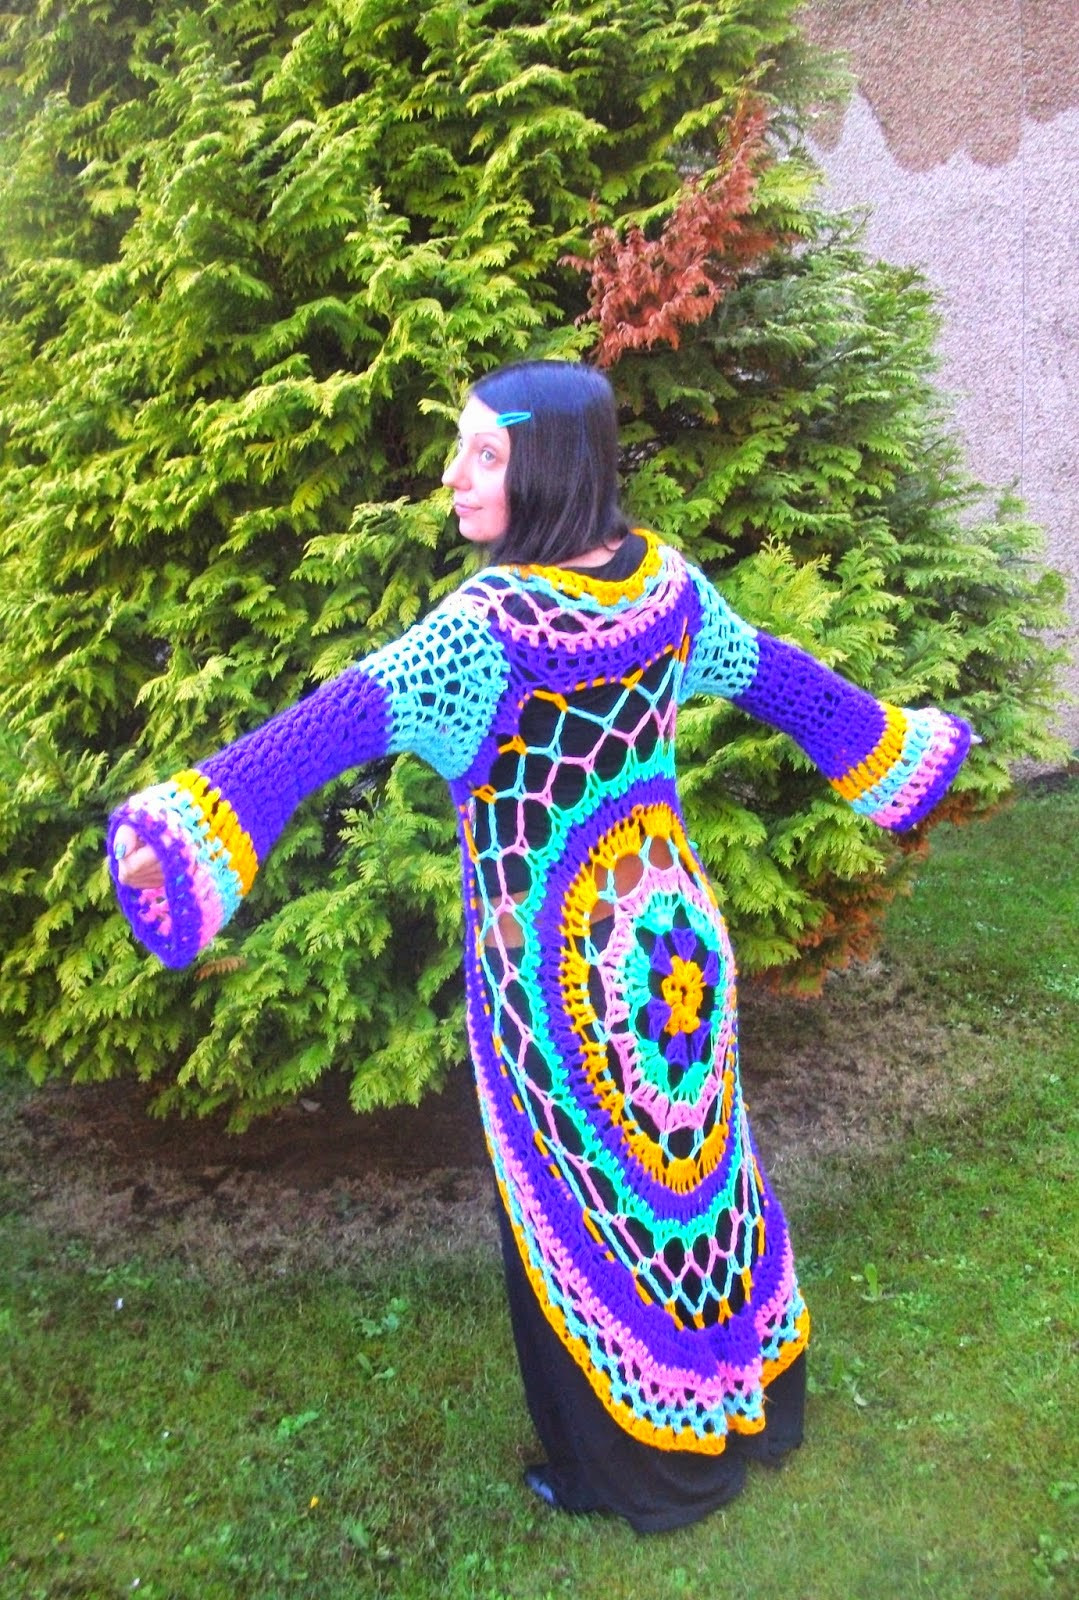 Crochet Mandala Vest Elegant Dada Neon Crochet How to Create Your Own Rainbow Of Attractive 50 Pics Crochet Mandala Vest